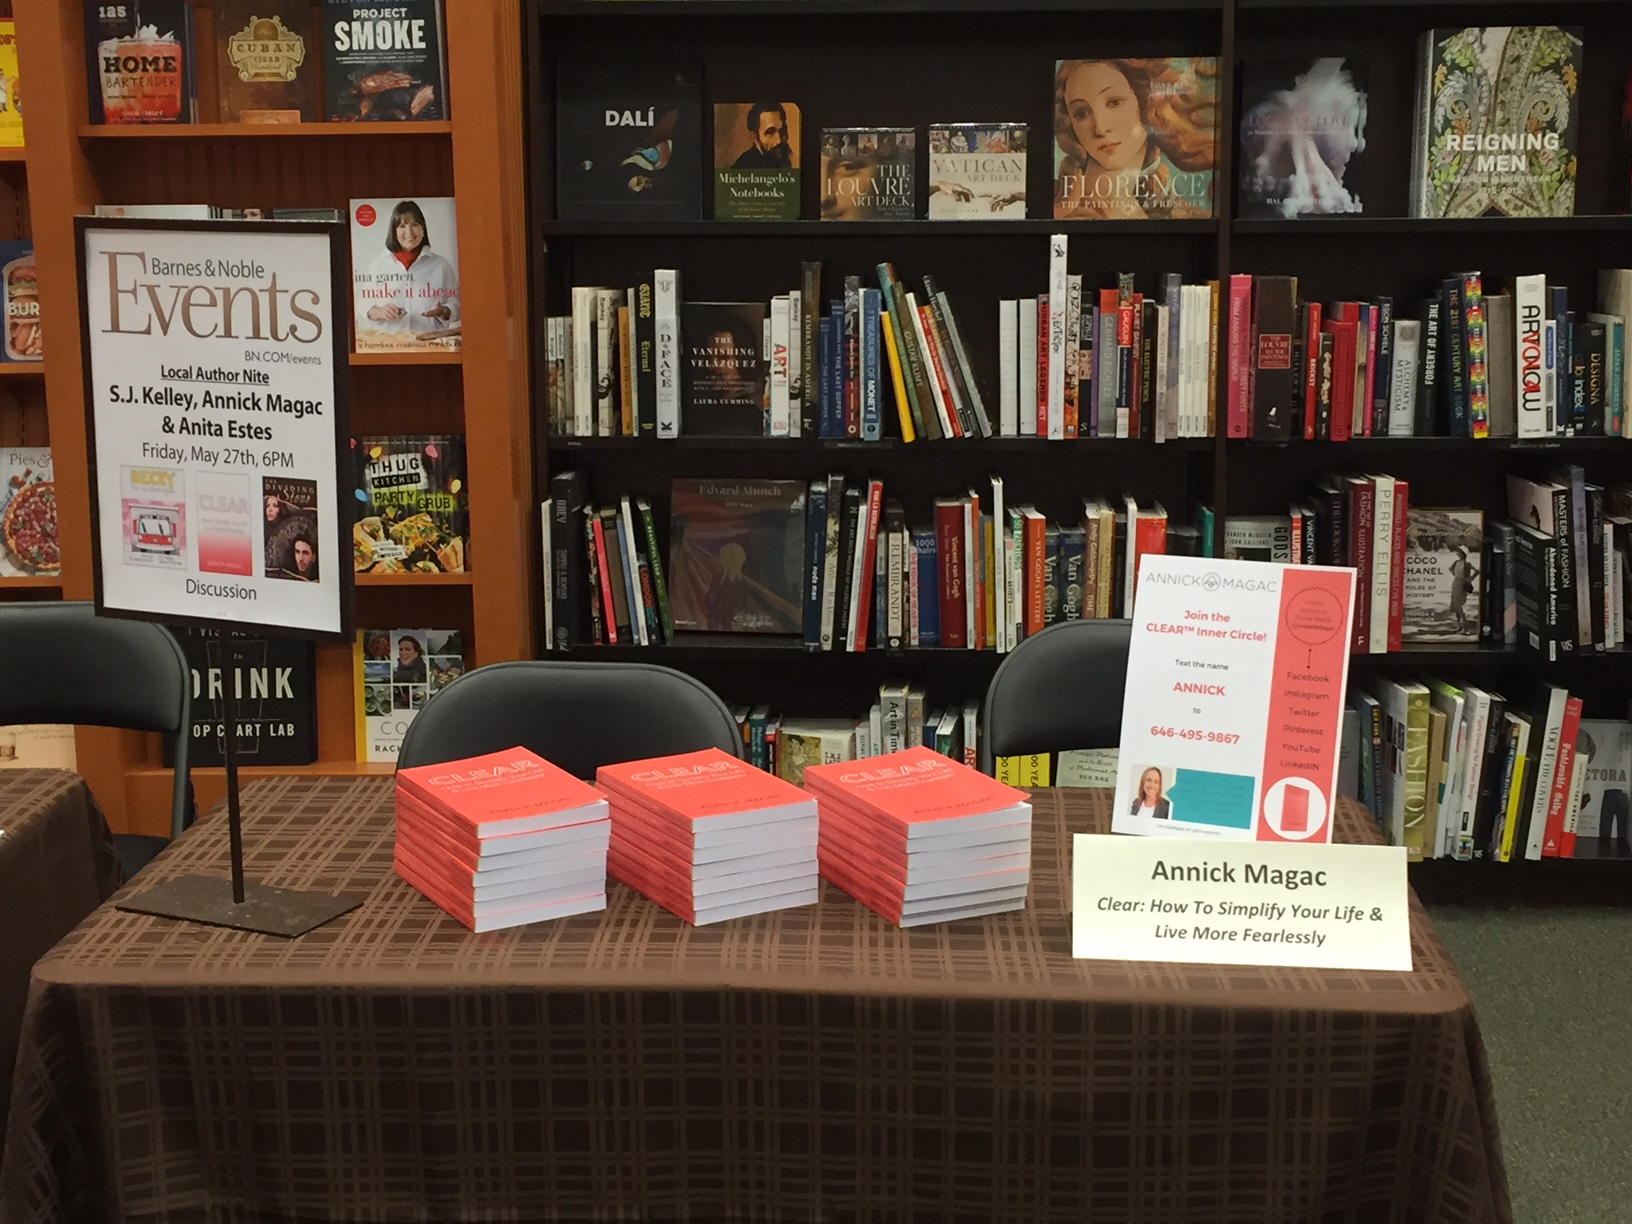 Barnes & Noble Book Signing - Annick Magac